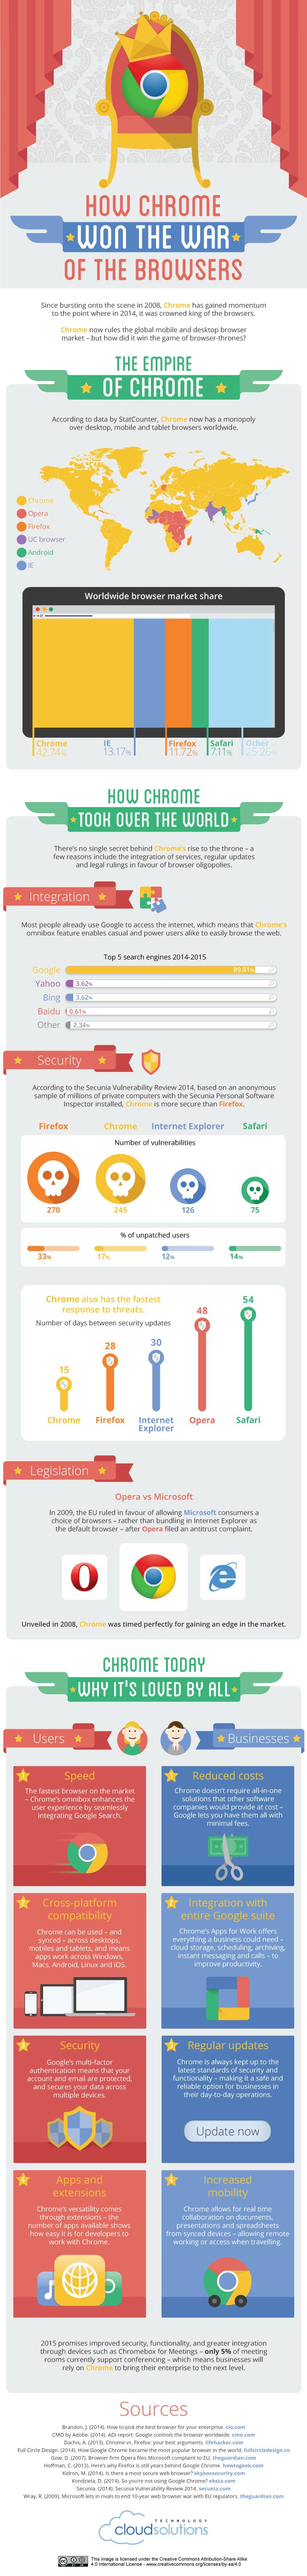 How Chrome Won the War of the Browsers #infographic